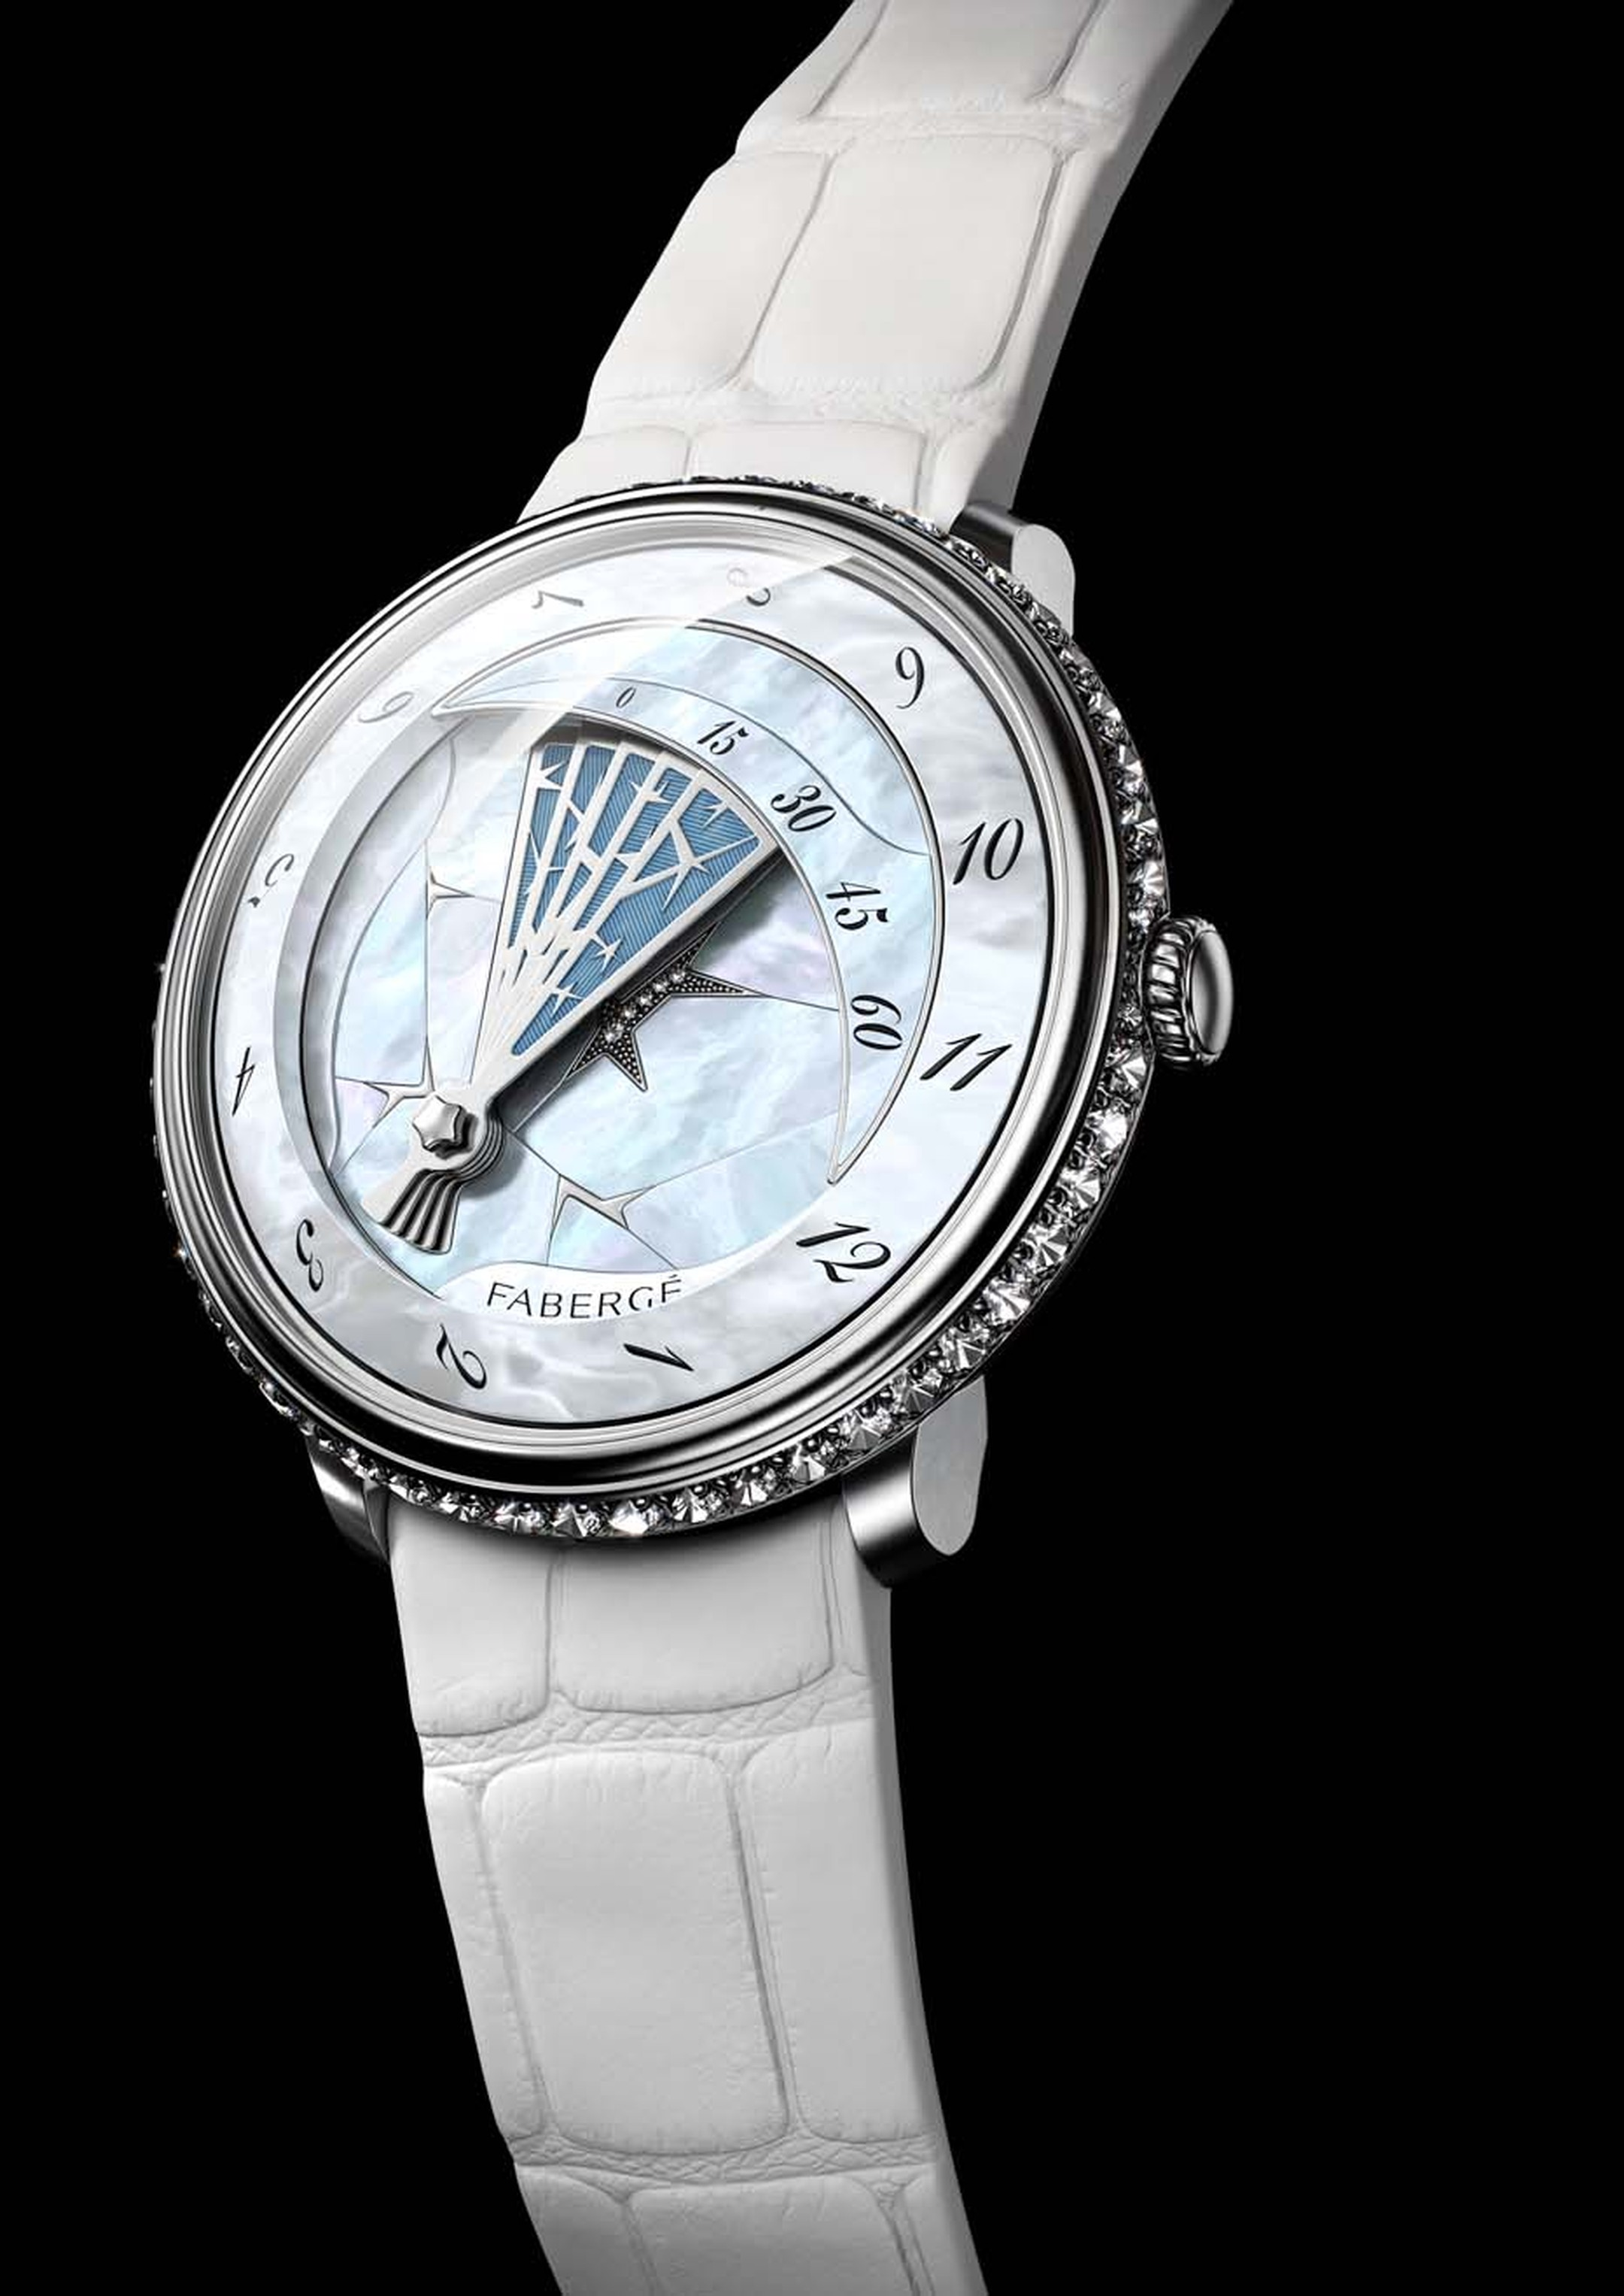 Fabergé's Winter watch, from its new Lady Compliquée collection, pays homage to the famous Fabergé Winter Egg of 1913. The unfolding fan of frost, complete with a blue enamel sky background, covers the dial on the hour and retreats again to reveal the cra